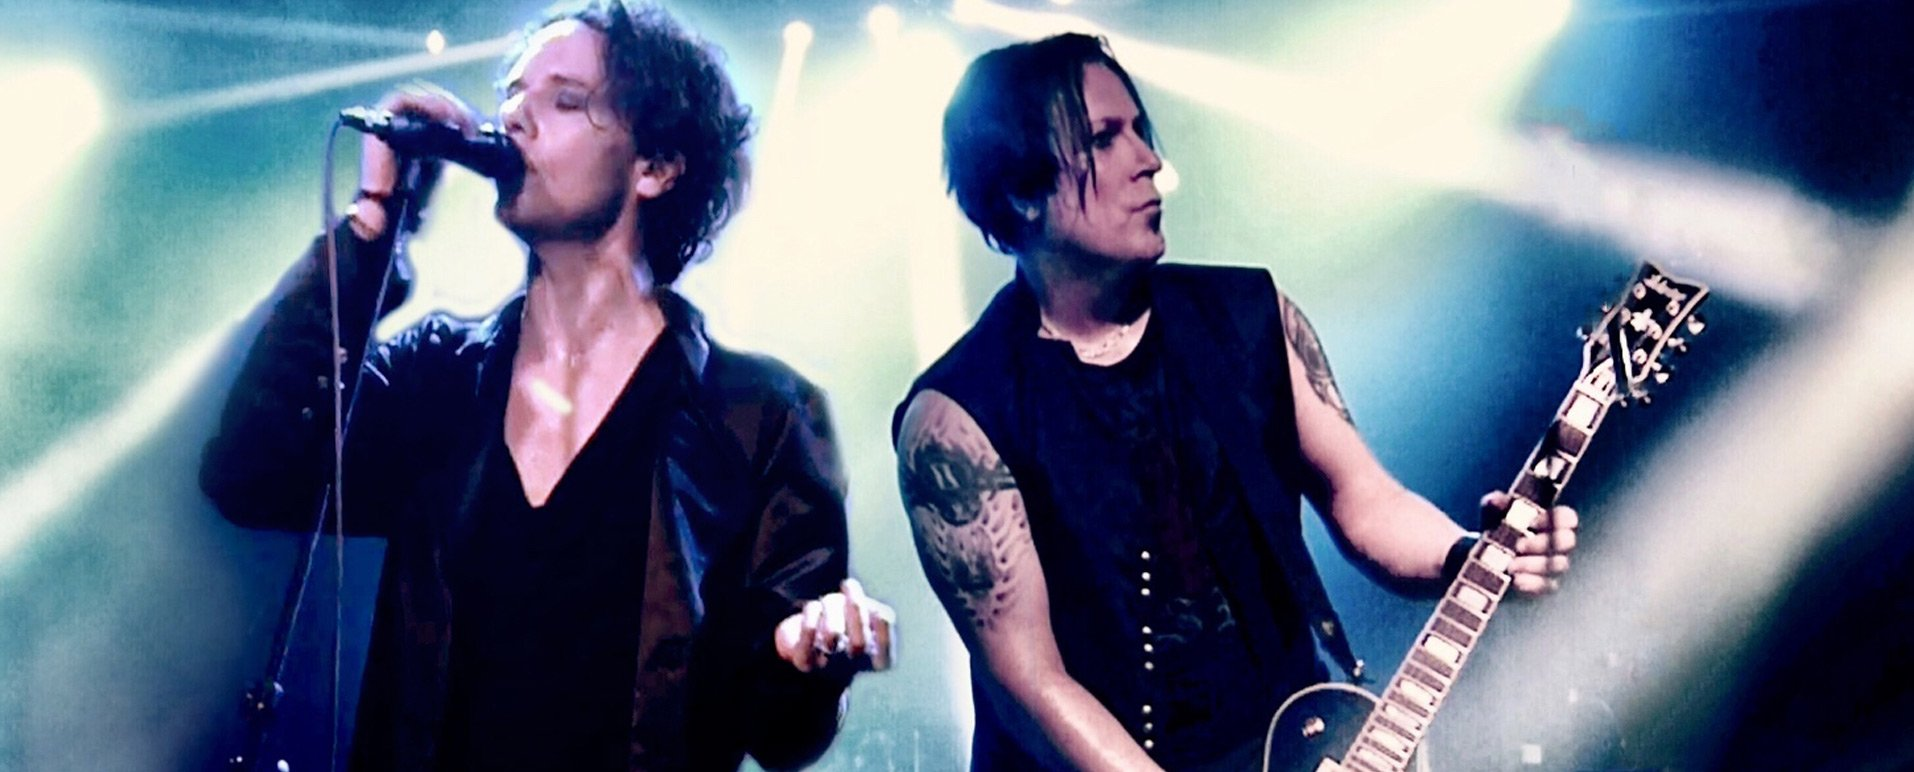 MGT teams up with founding members of The Cure for a remix of